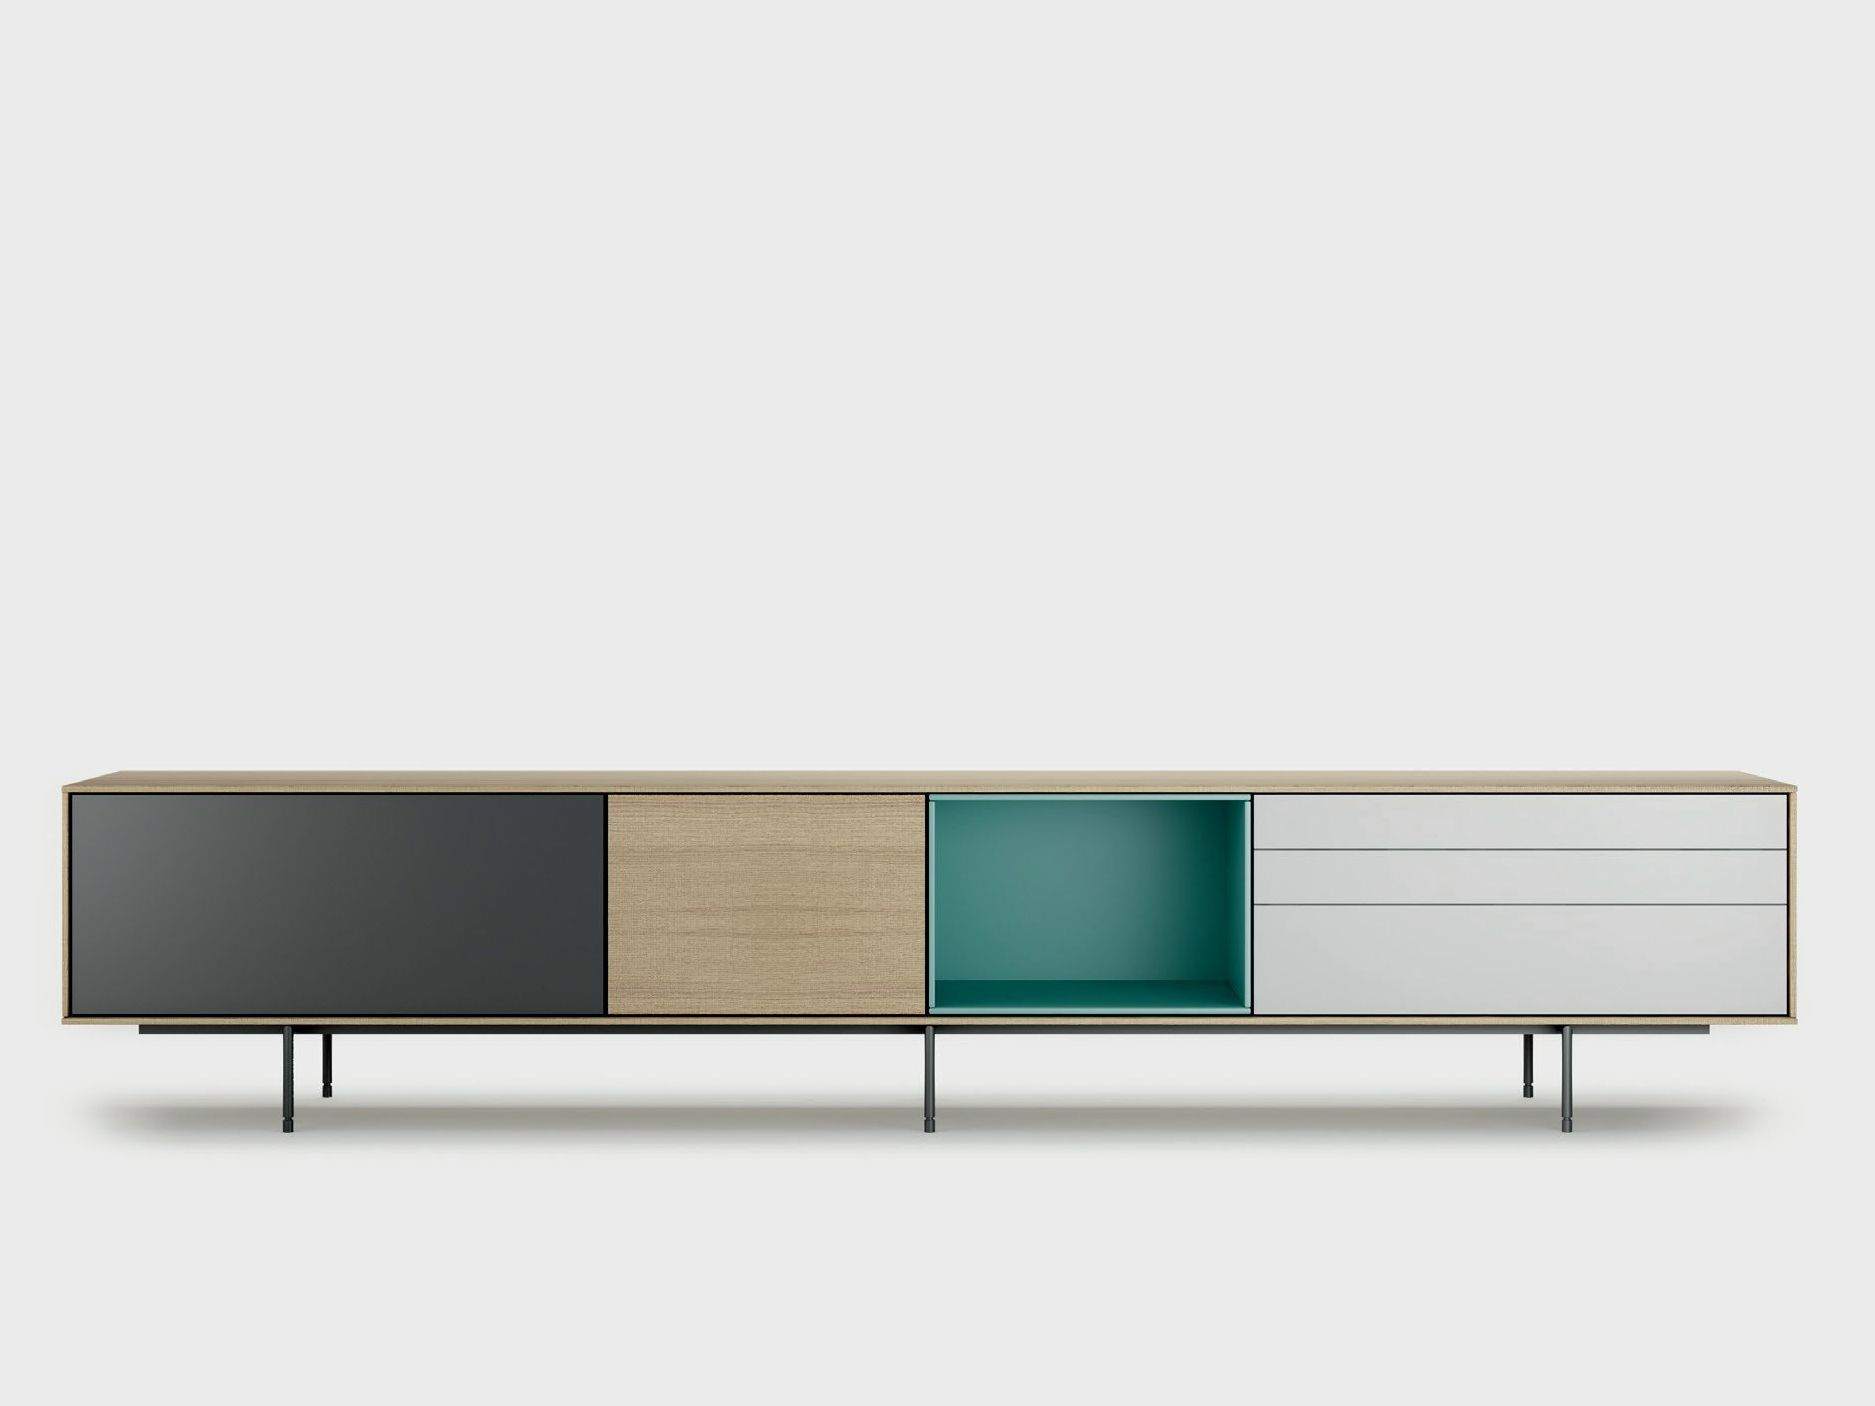 Meuble Treku Aura Collection By Ángel Martí And Enrique Delamo For Treku